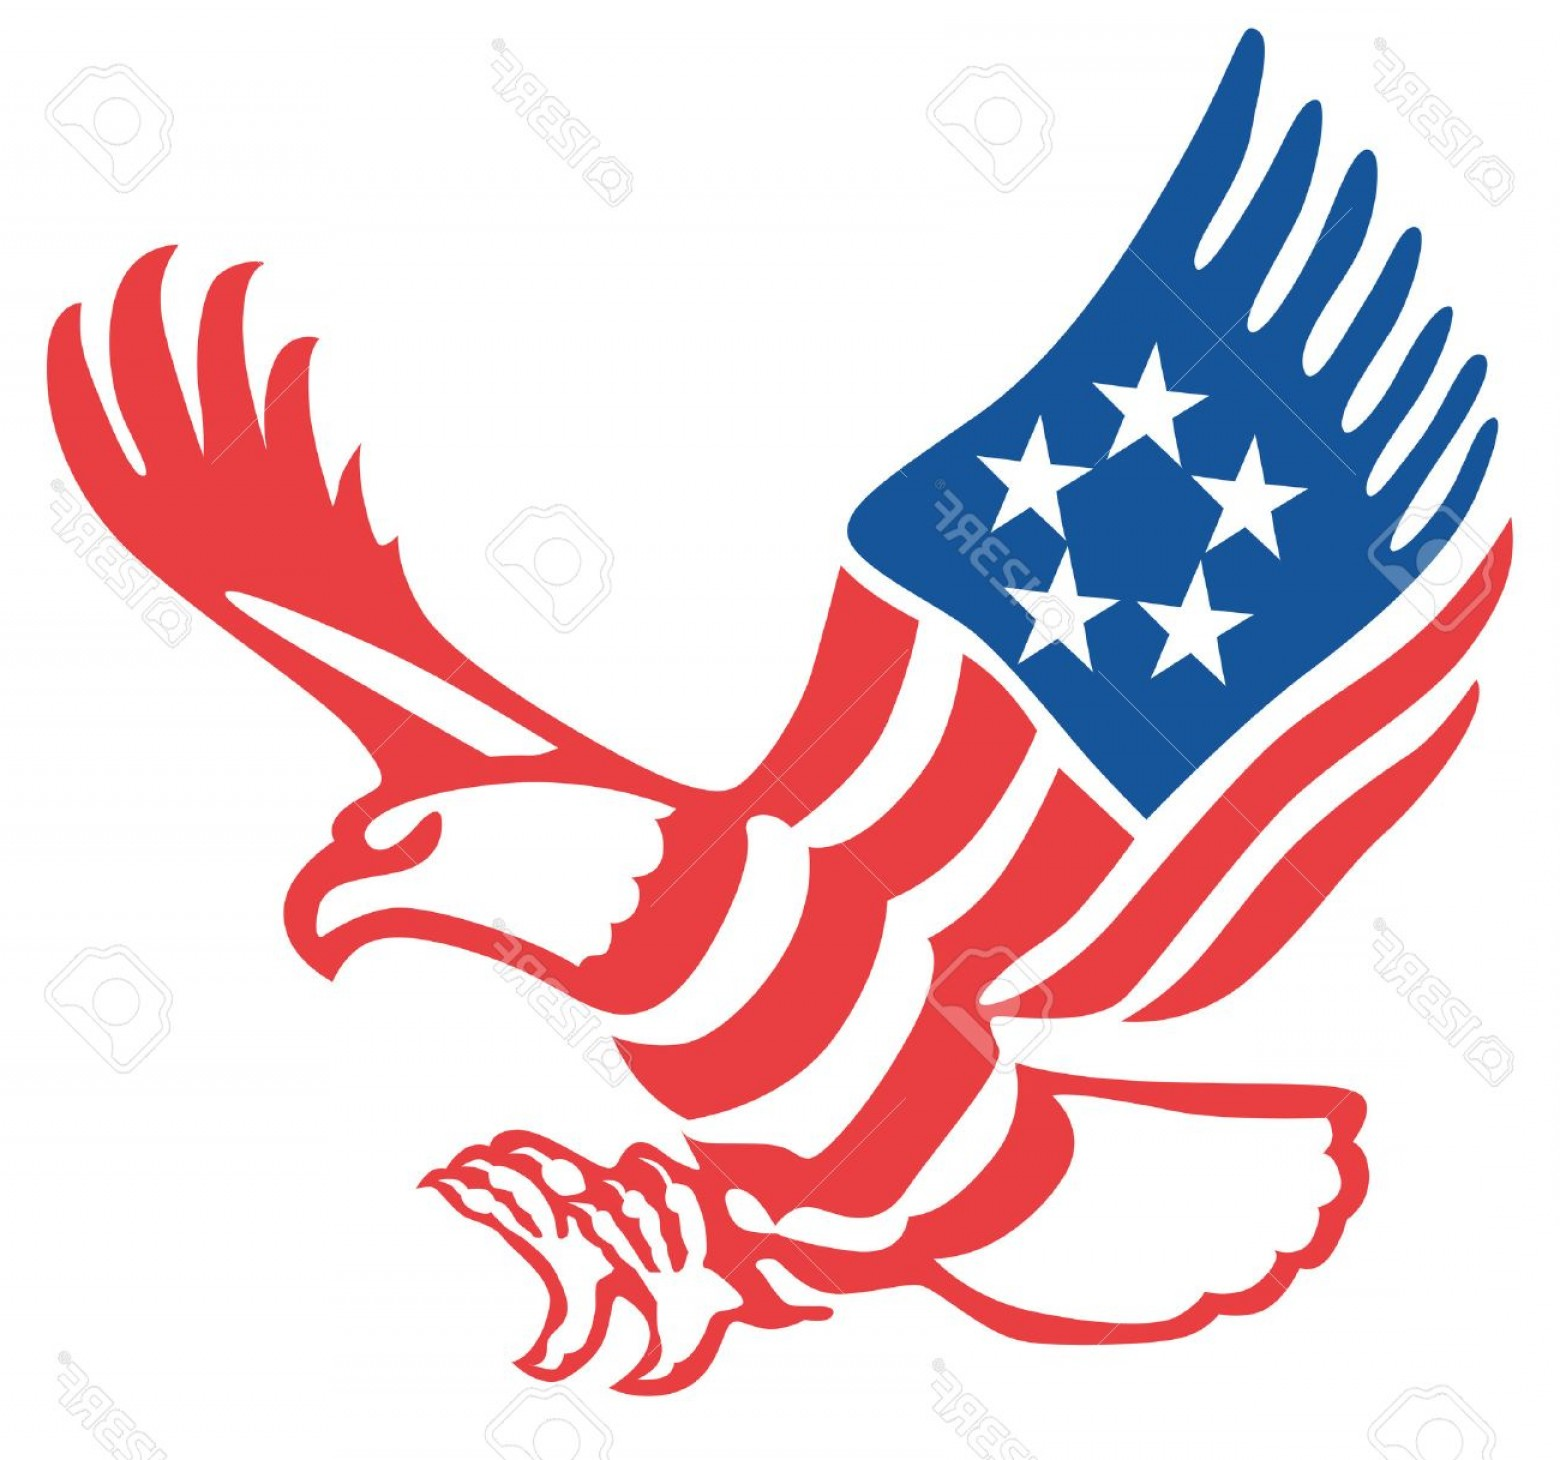 Patriotic Bald Eagle Vector: Photostock Vector American Eagle In The Patriotic Colors On The Fly